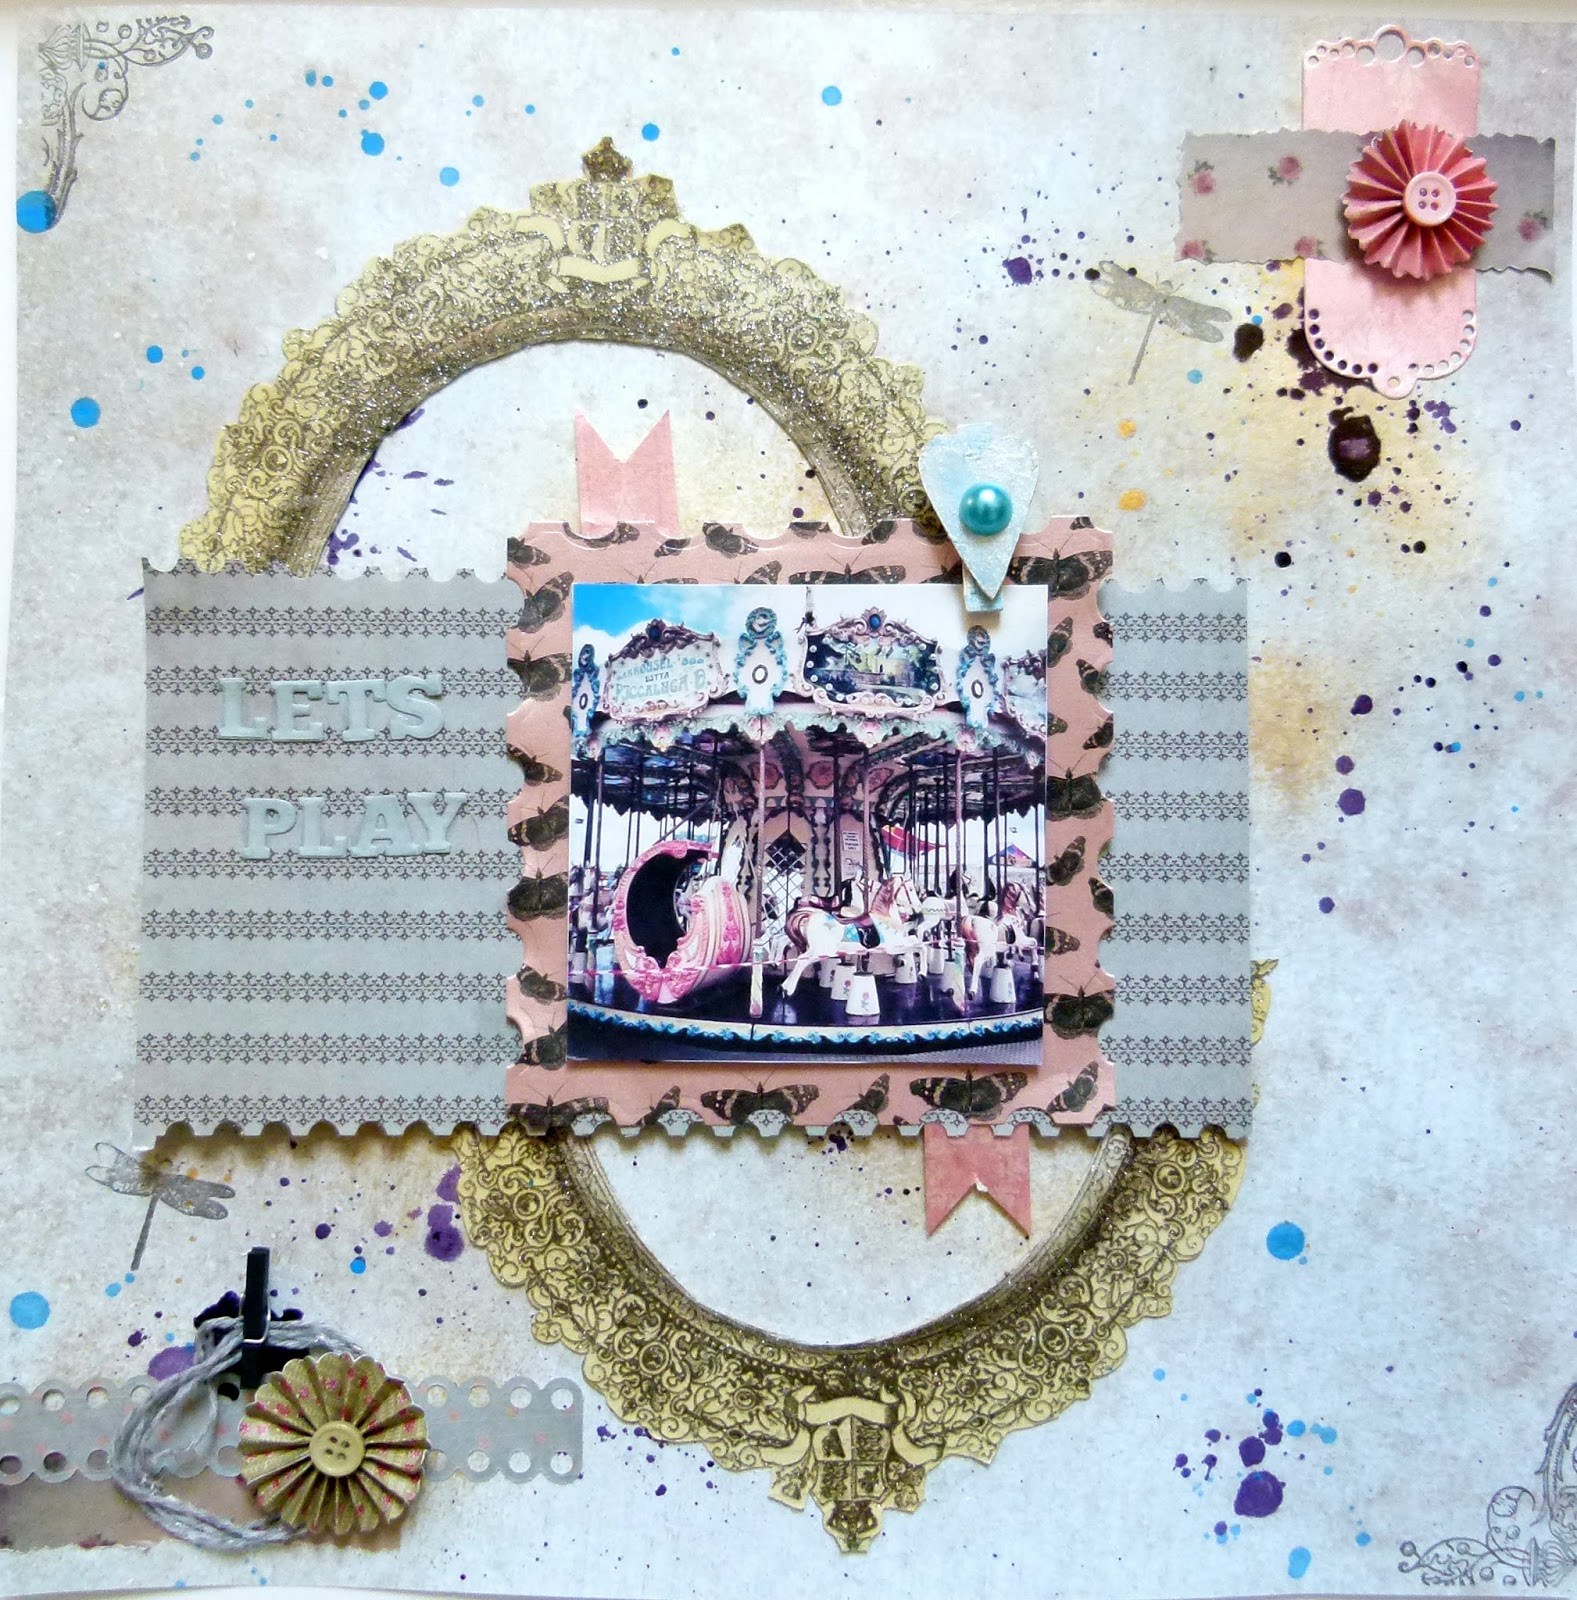 How to make scrapbook using recycled materials - I Wanted To Create A Layout That Reused Packaging The Background Was Created By Using Decoart Misters And Creating Splats By Unscrewing The Cap And